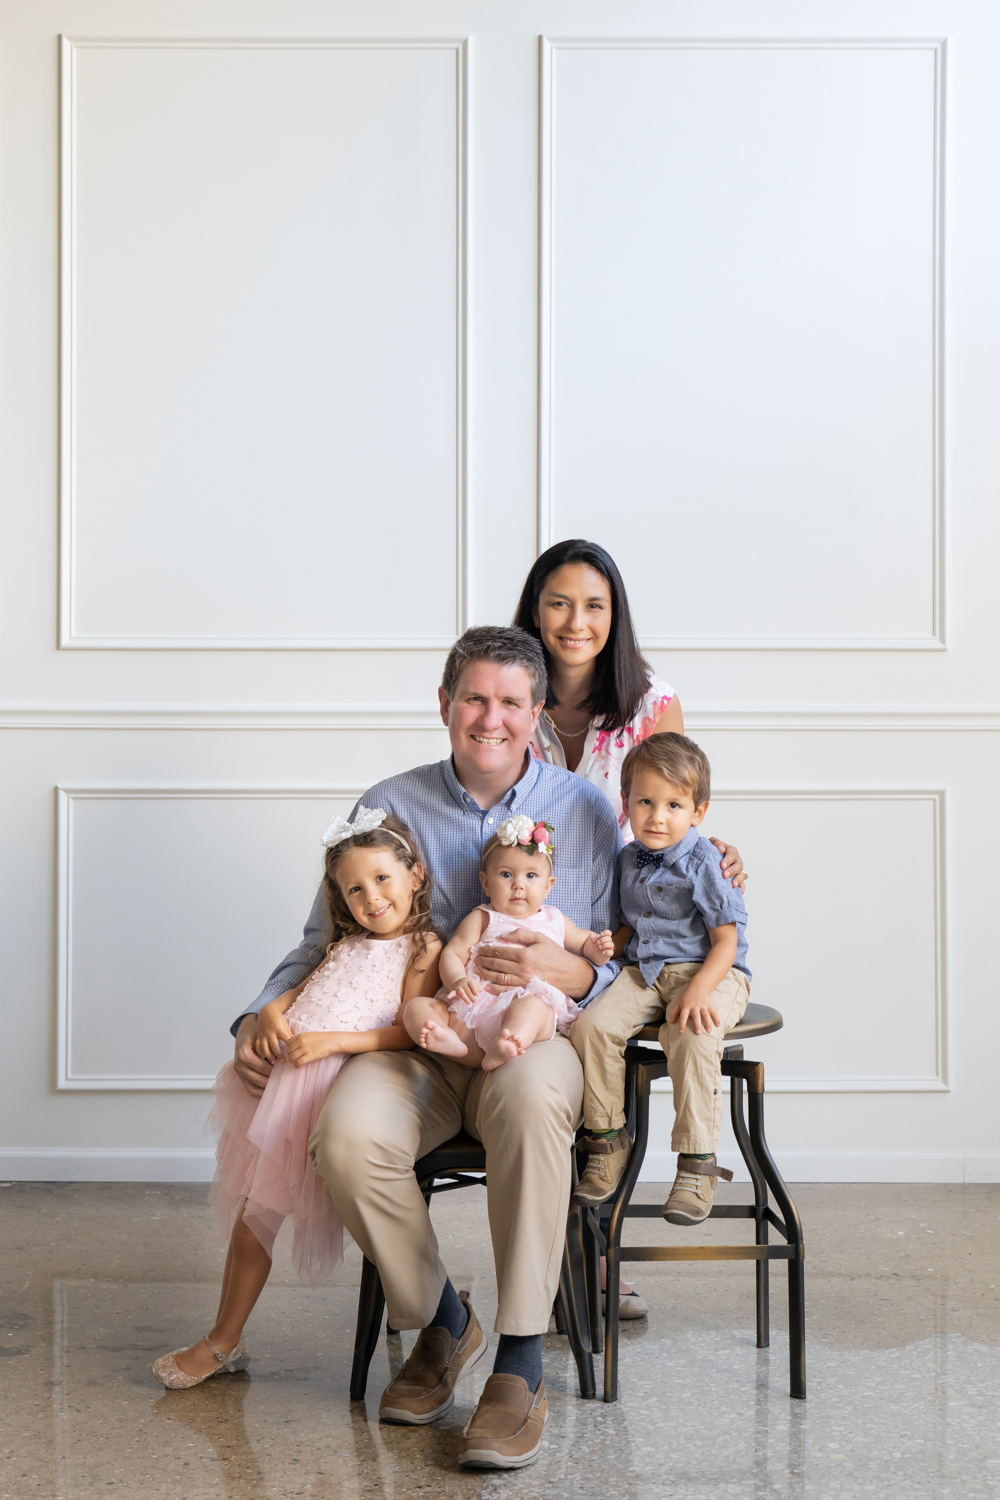 Family with three kids poses for a portrait in a Chicago photo studio.